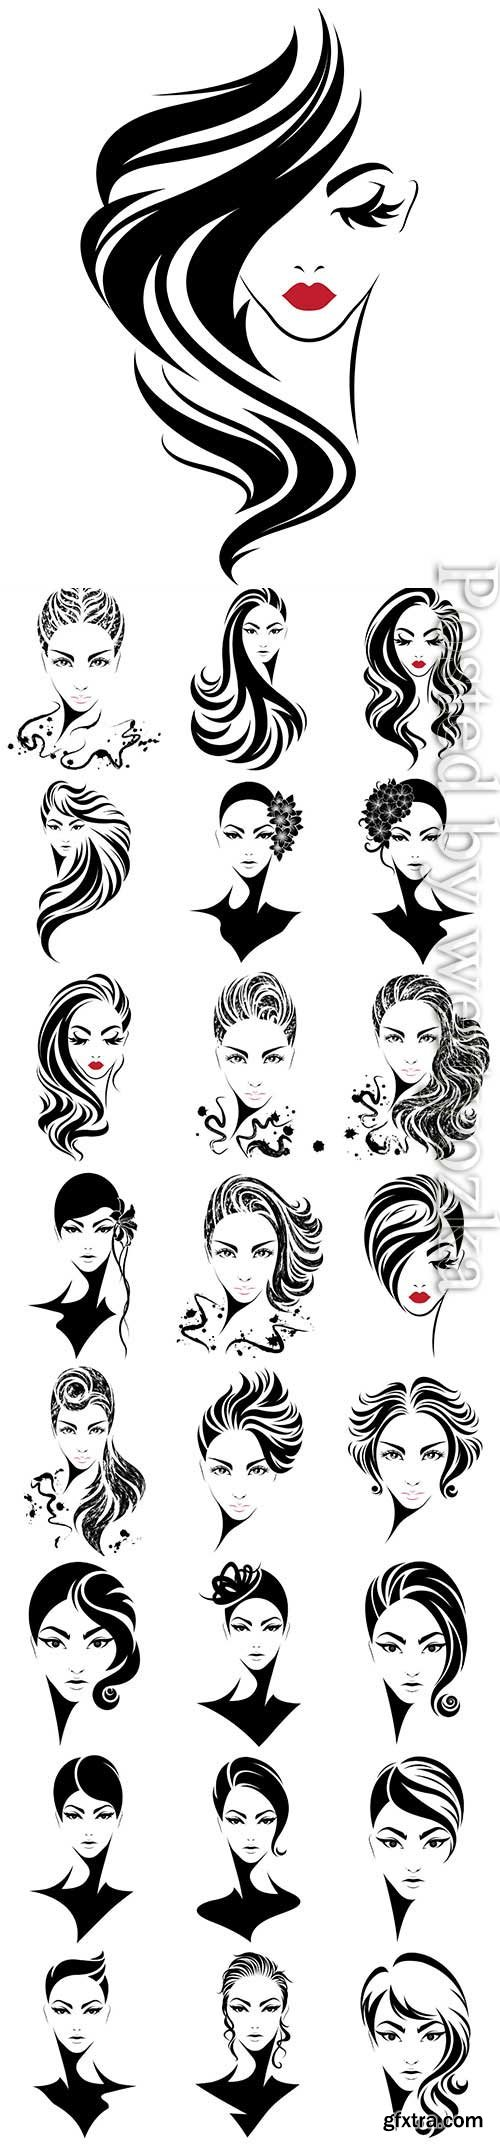 Girls with different hairstyles in vector